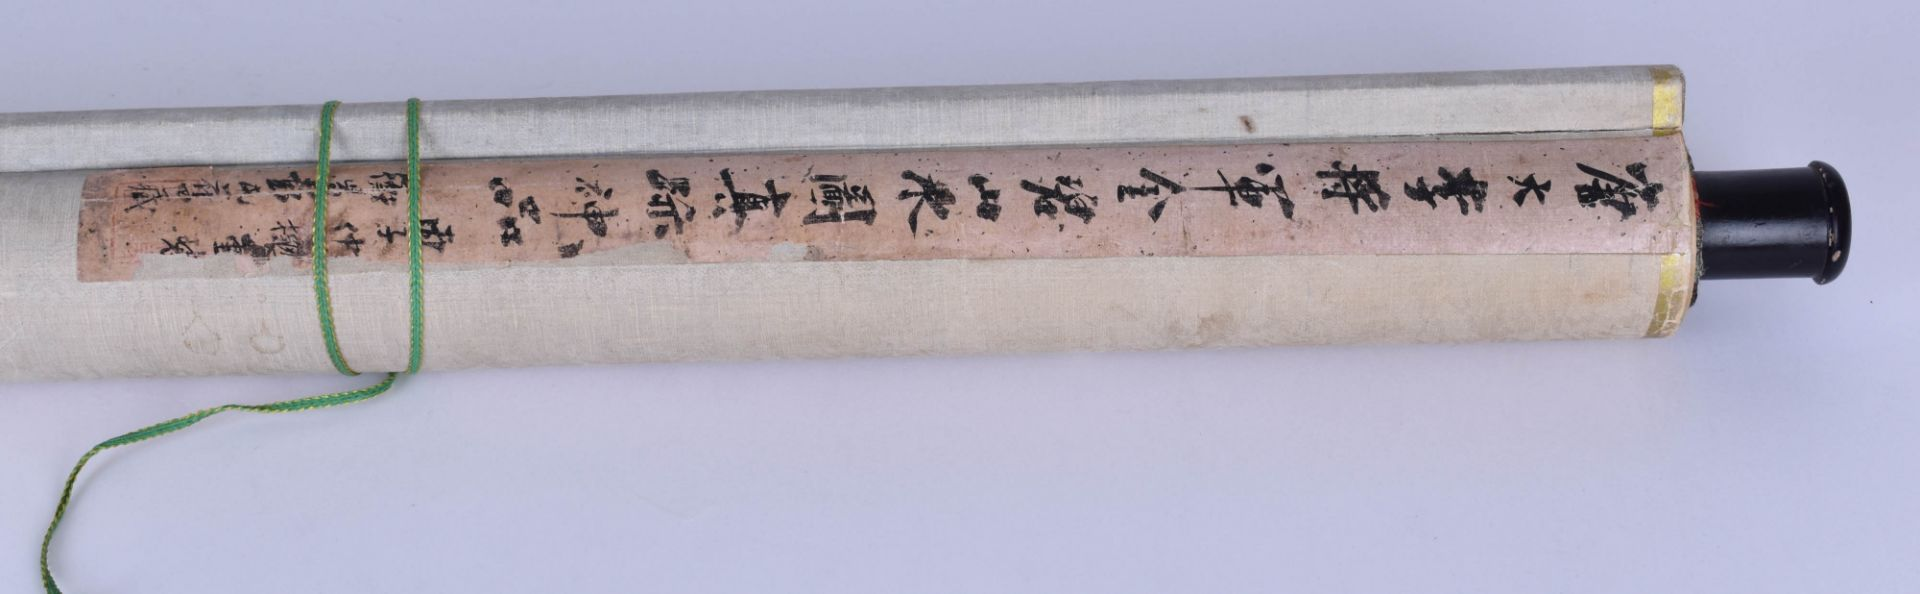 Scroll painting China Qing dynasty - Image 5 of 5